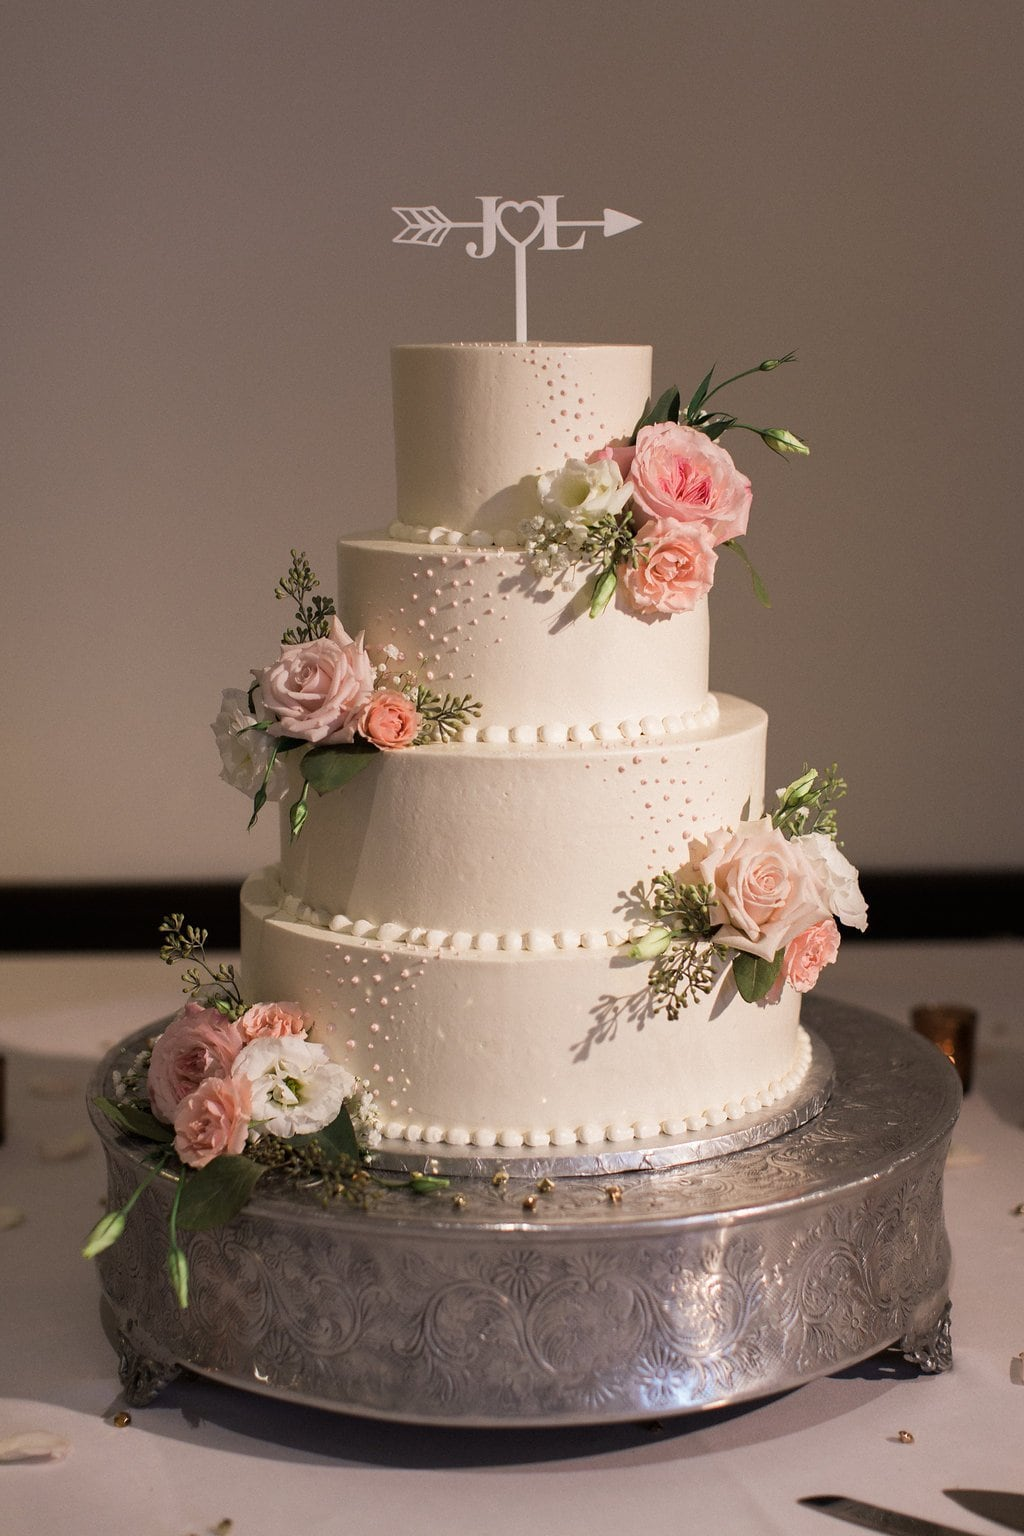 Wedding cake decorated with pink flowers